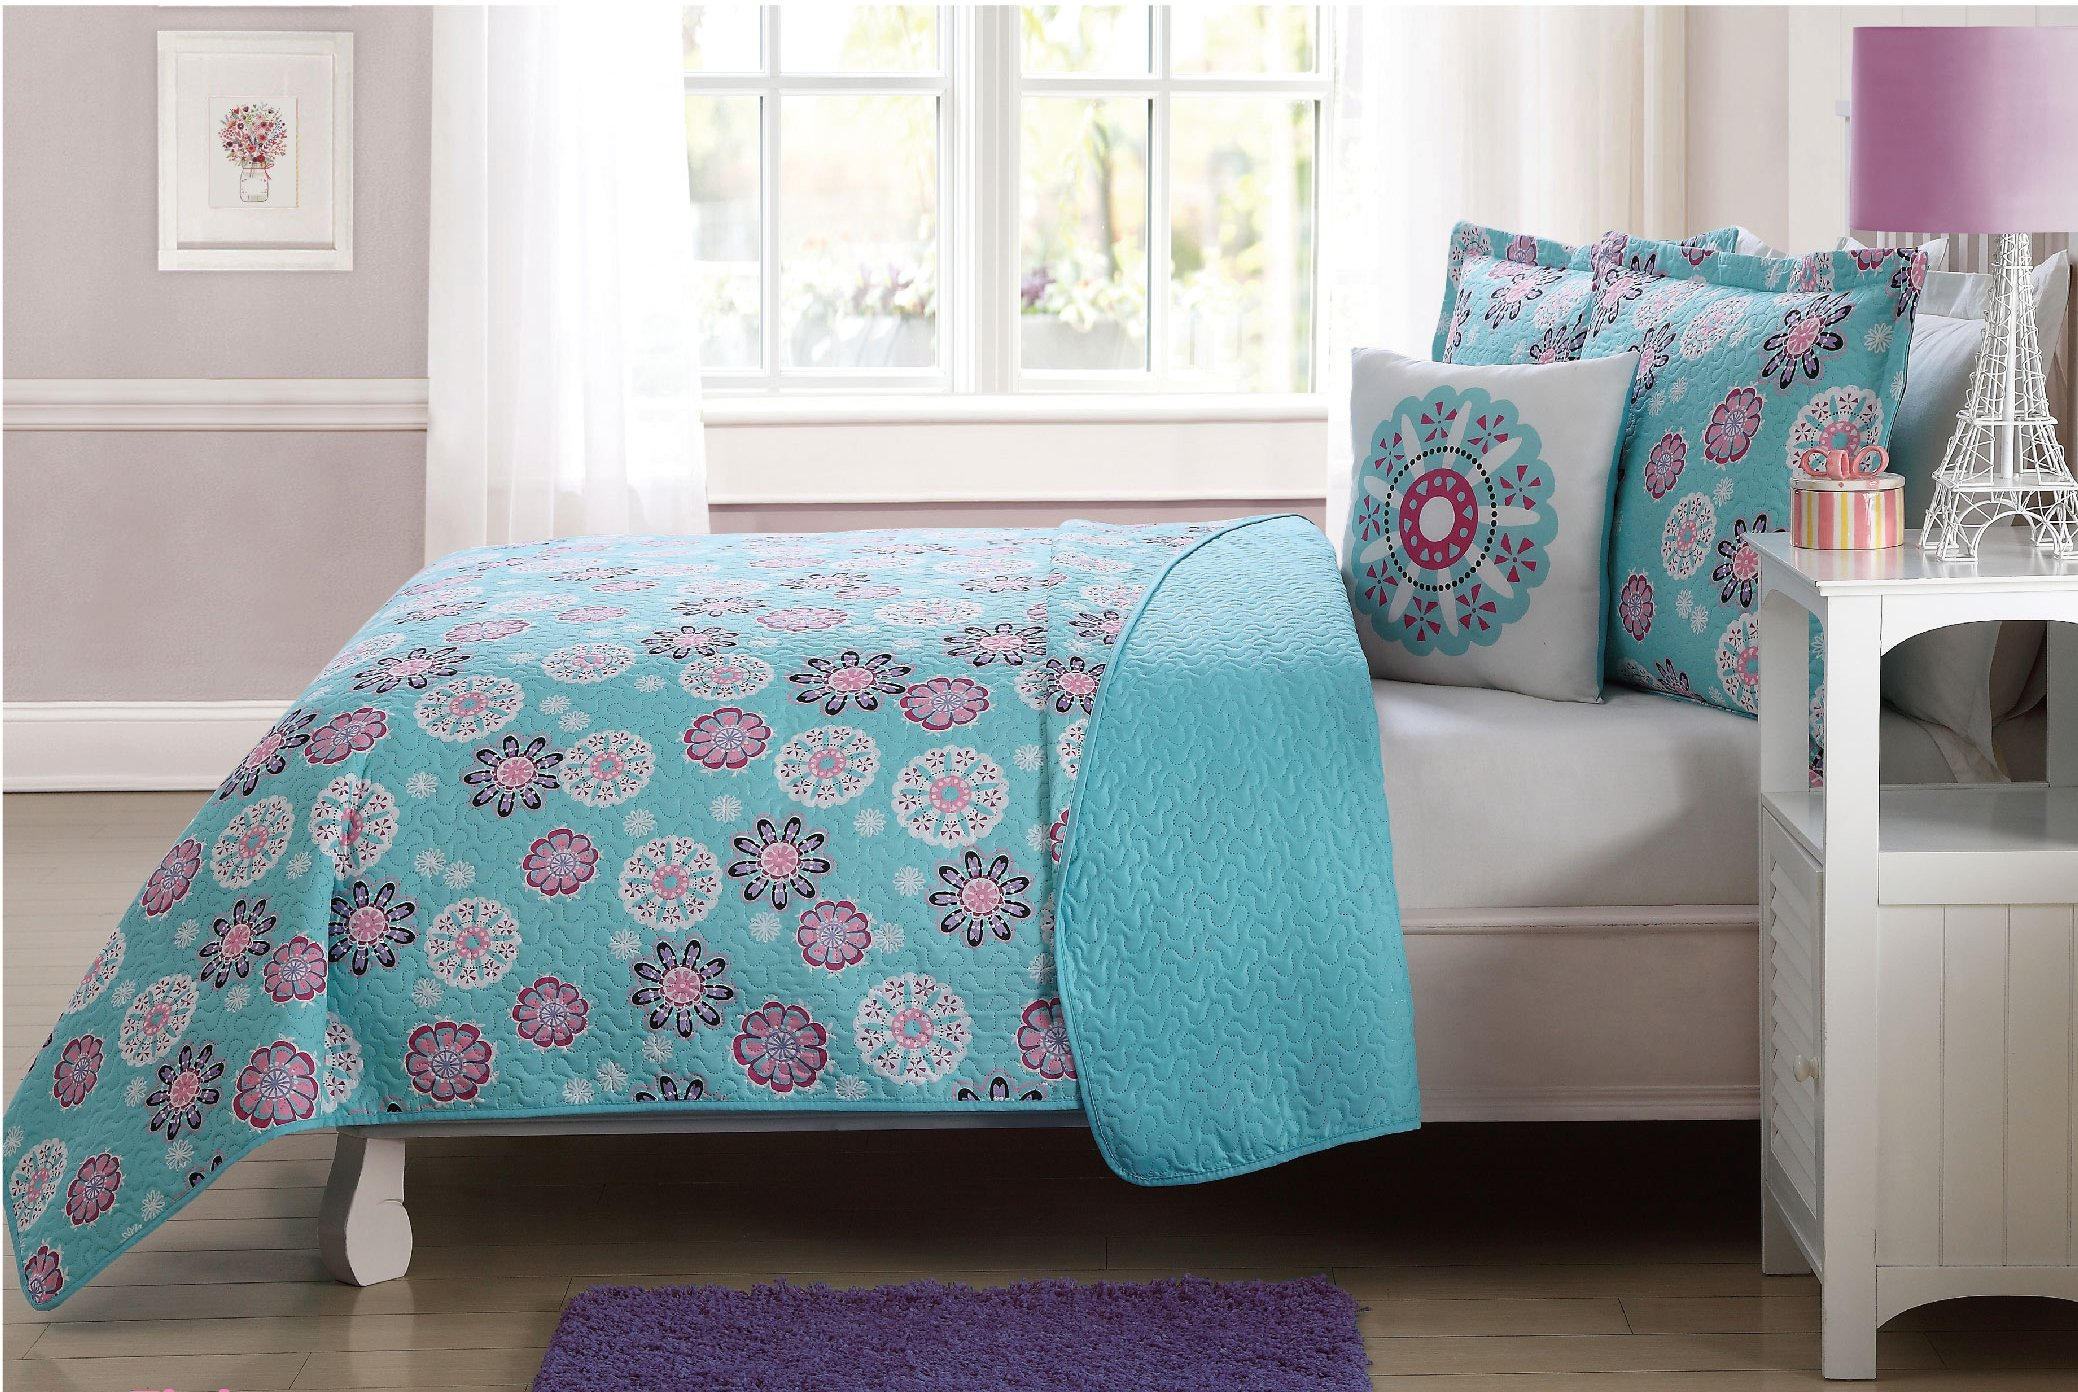 Fancy Linen 4 Pc Full Size Bedspread Coverlet Reversible Flakes Floral Turquoise Pink White New # Flakes